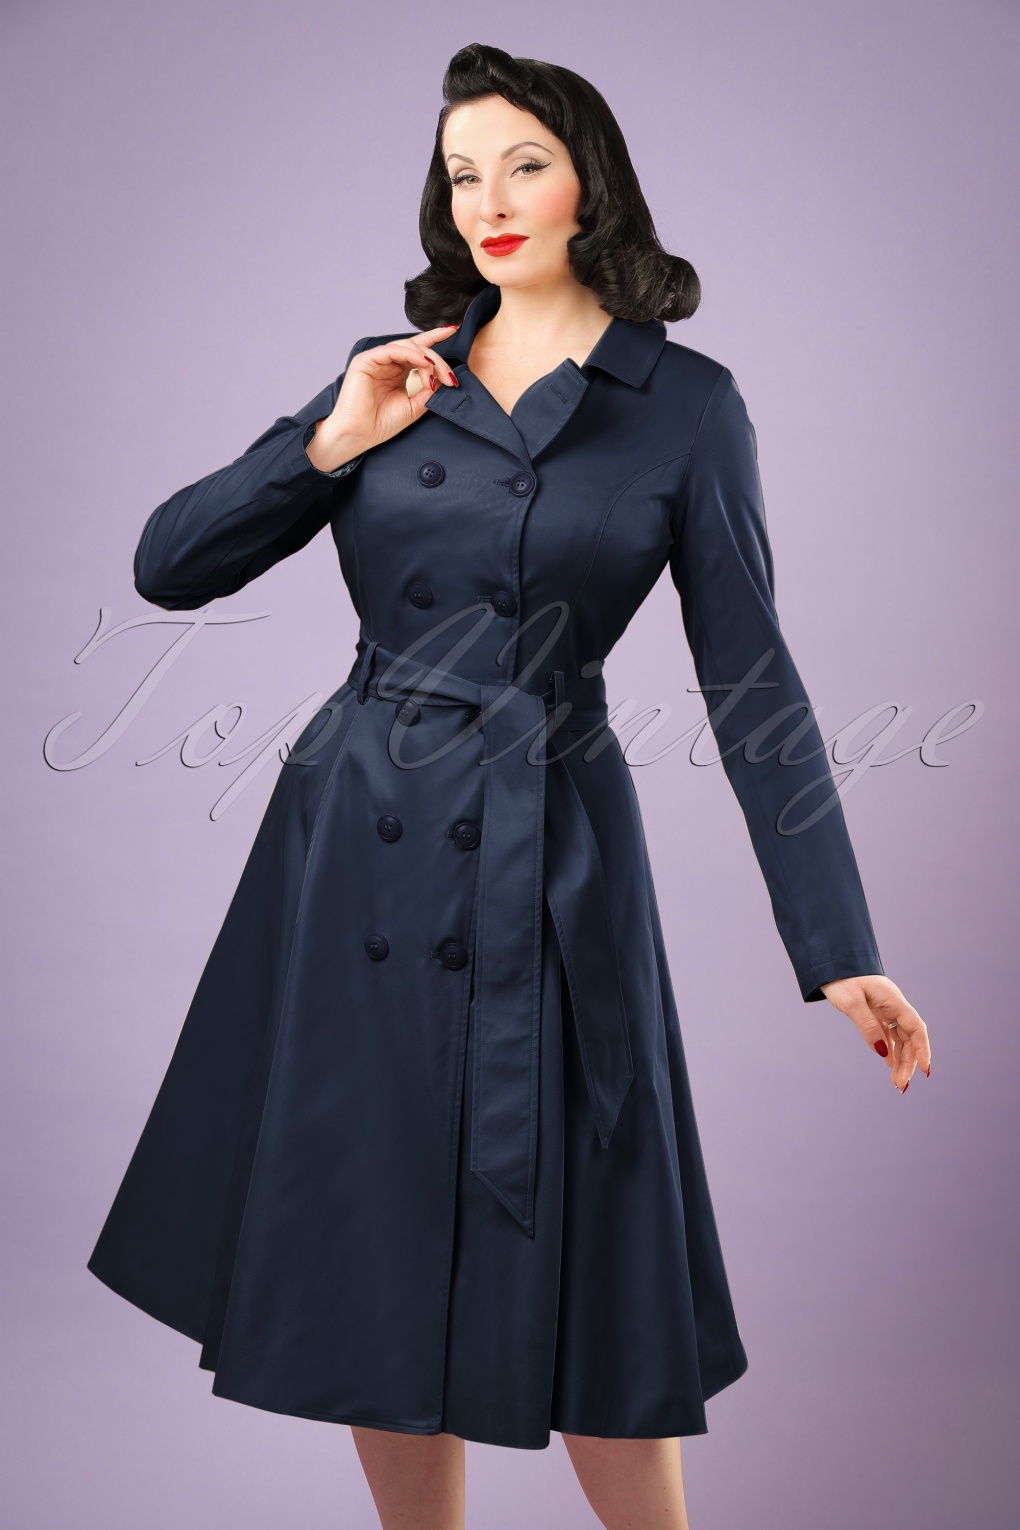 1950s Jackets, Coats, Bolero | Swing, Pin Up, Rockabilly 40s Korrina Swing Trench Coat in Navy �128.62 AT vintagedancer.com